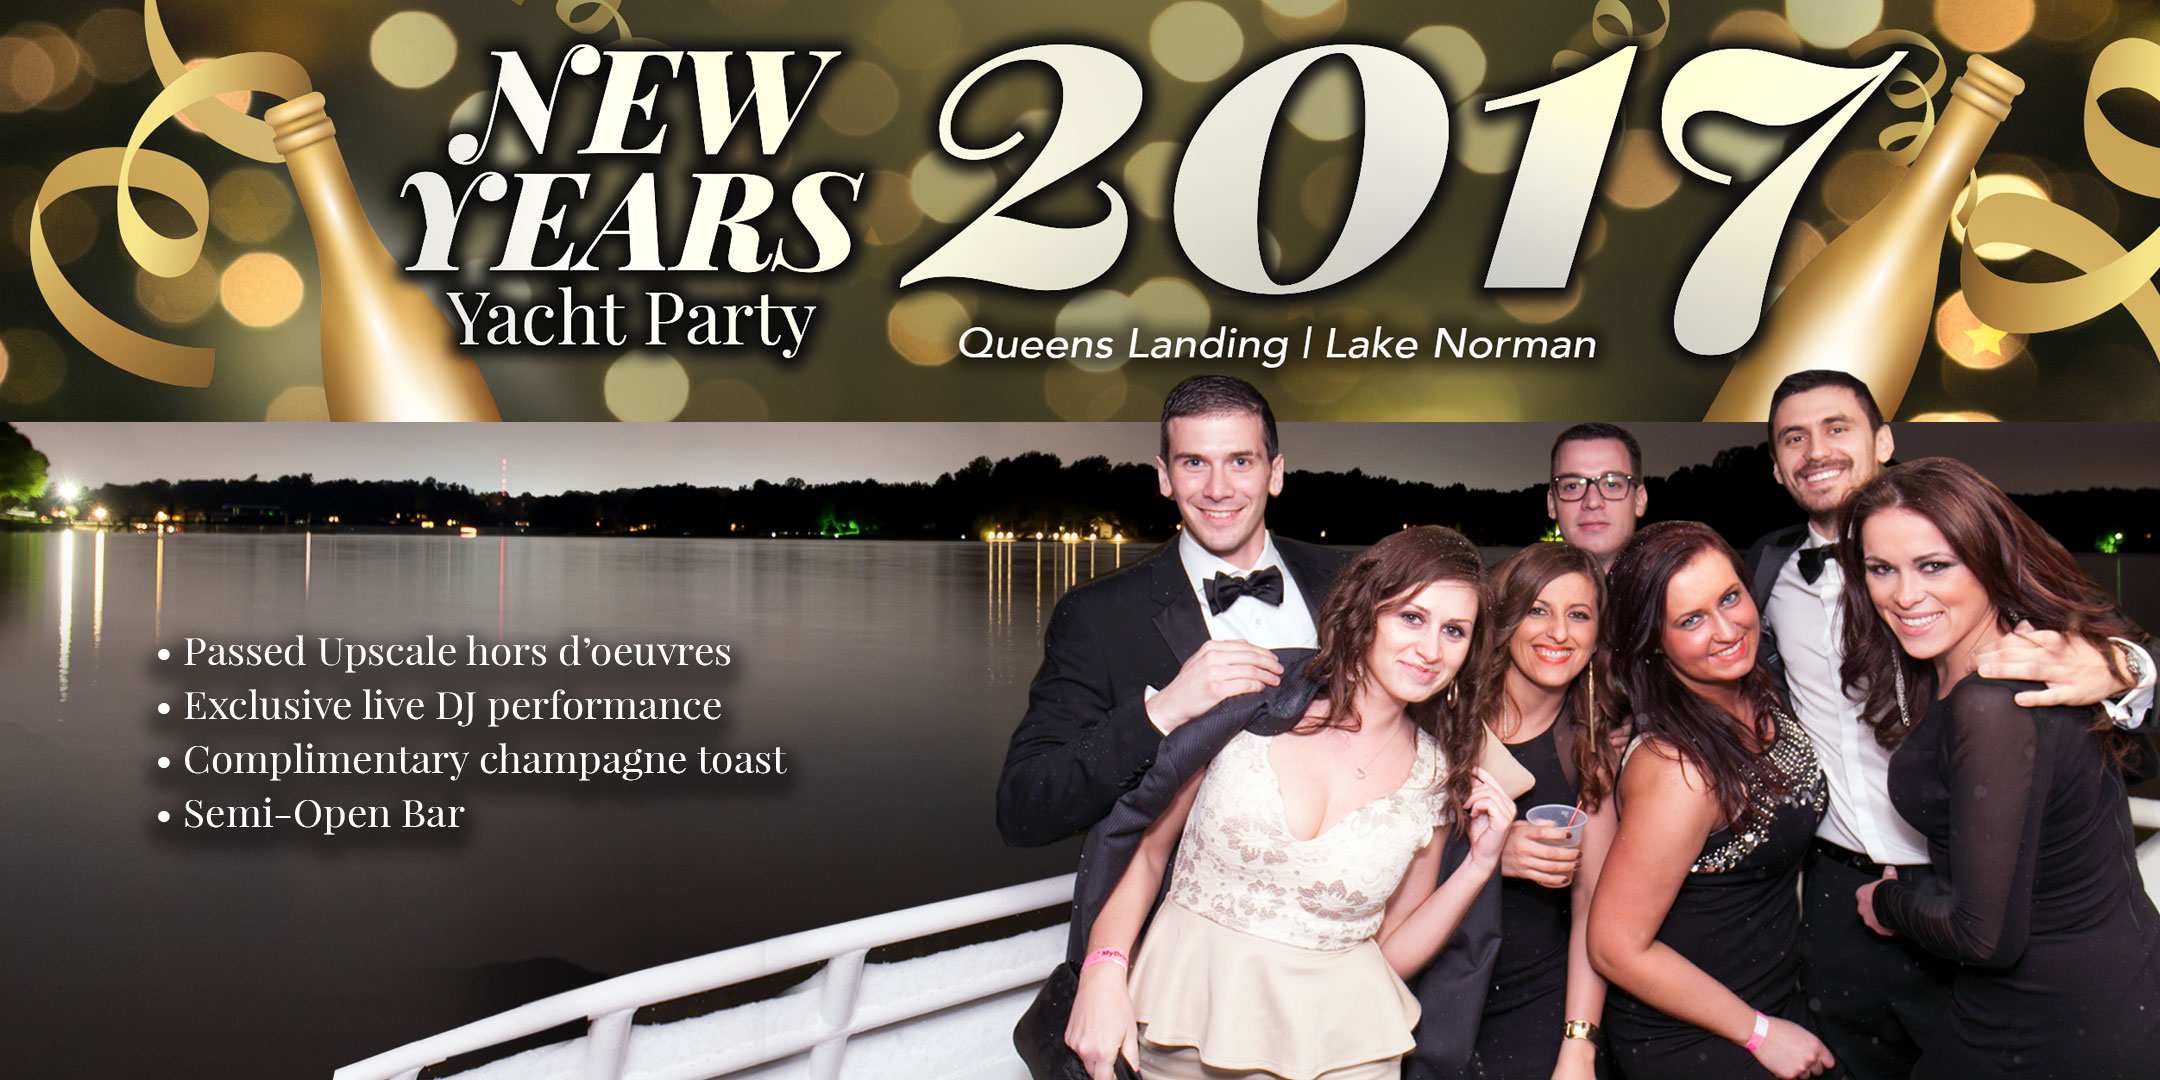 New Years Eve Yacht Party 2017 – Queens Landing